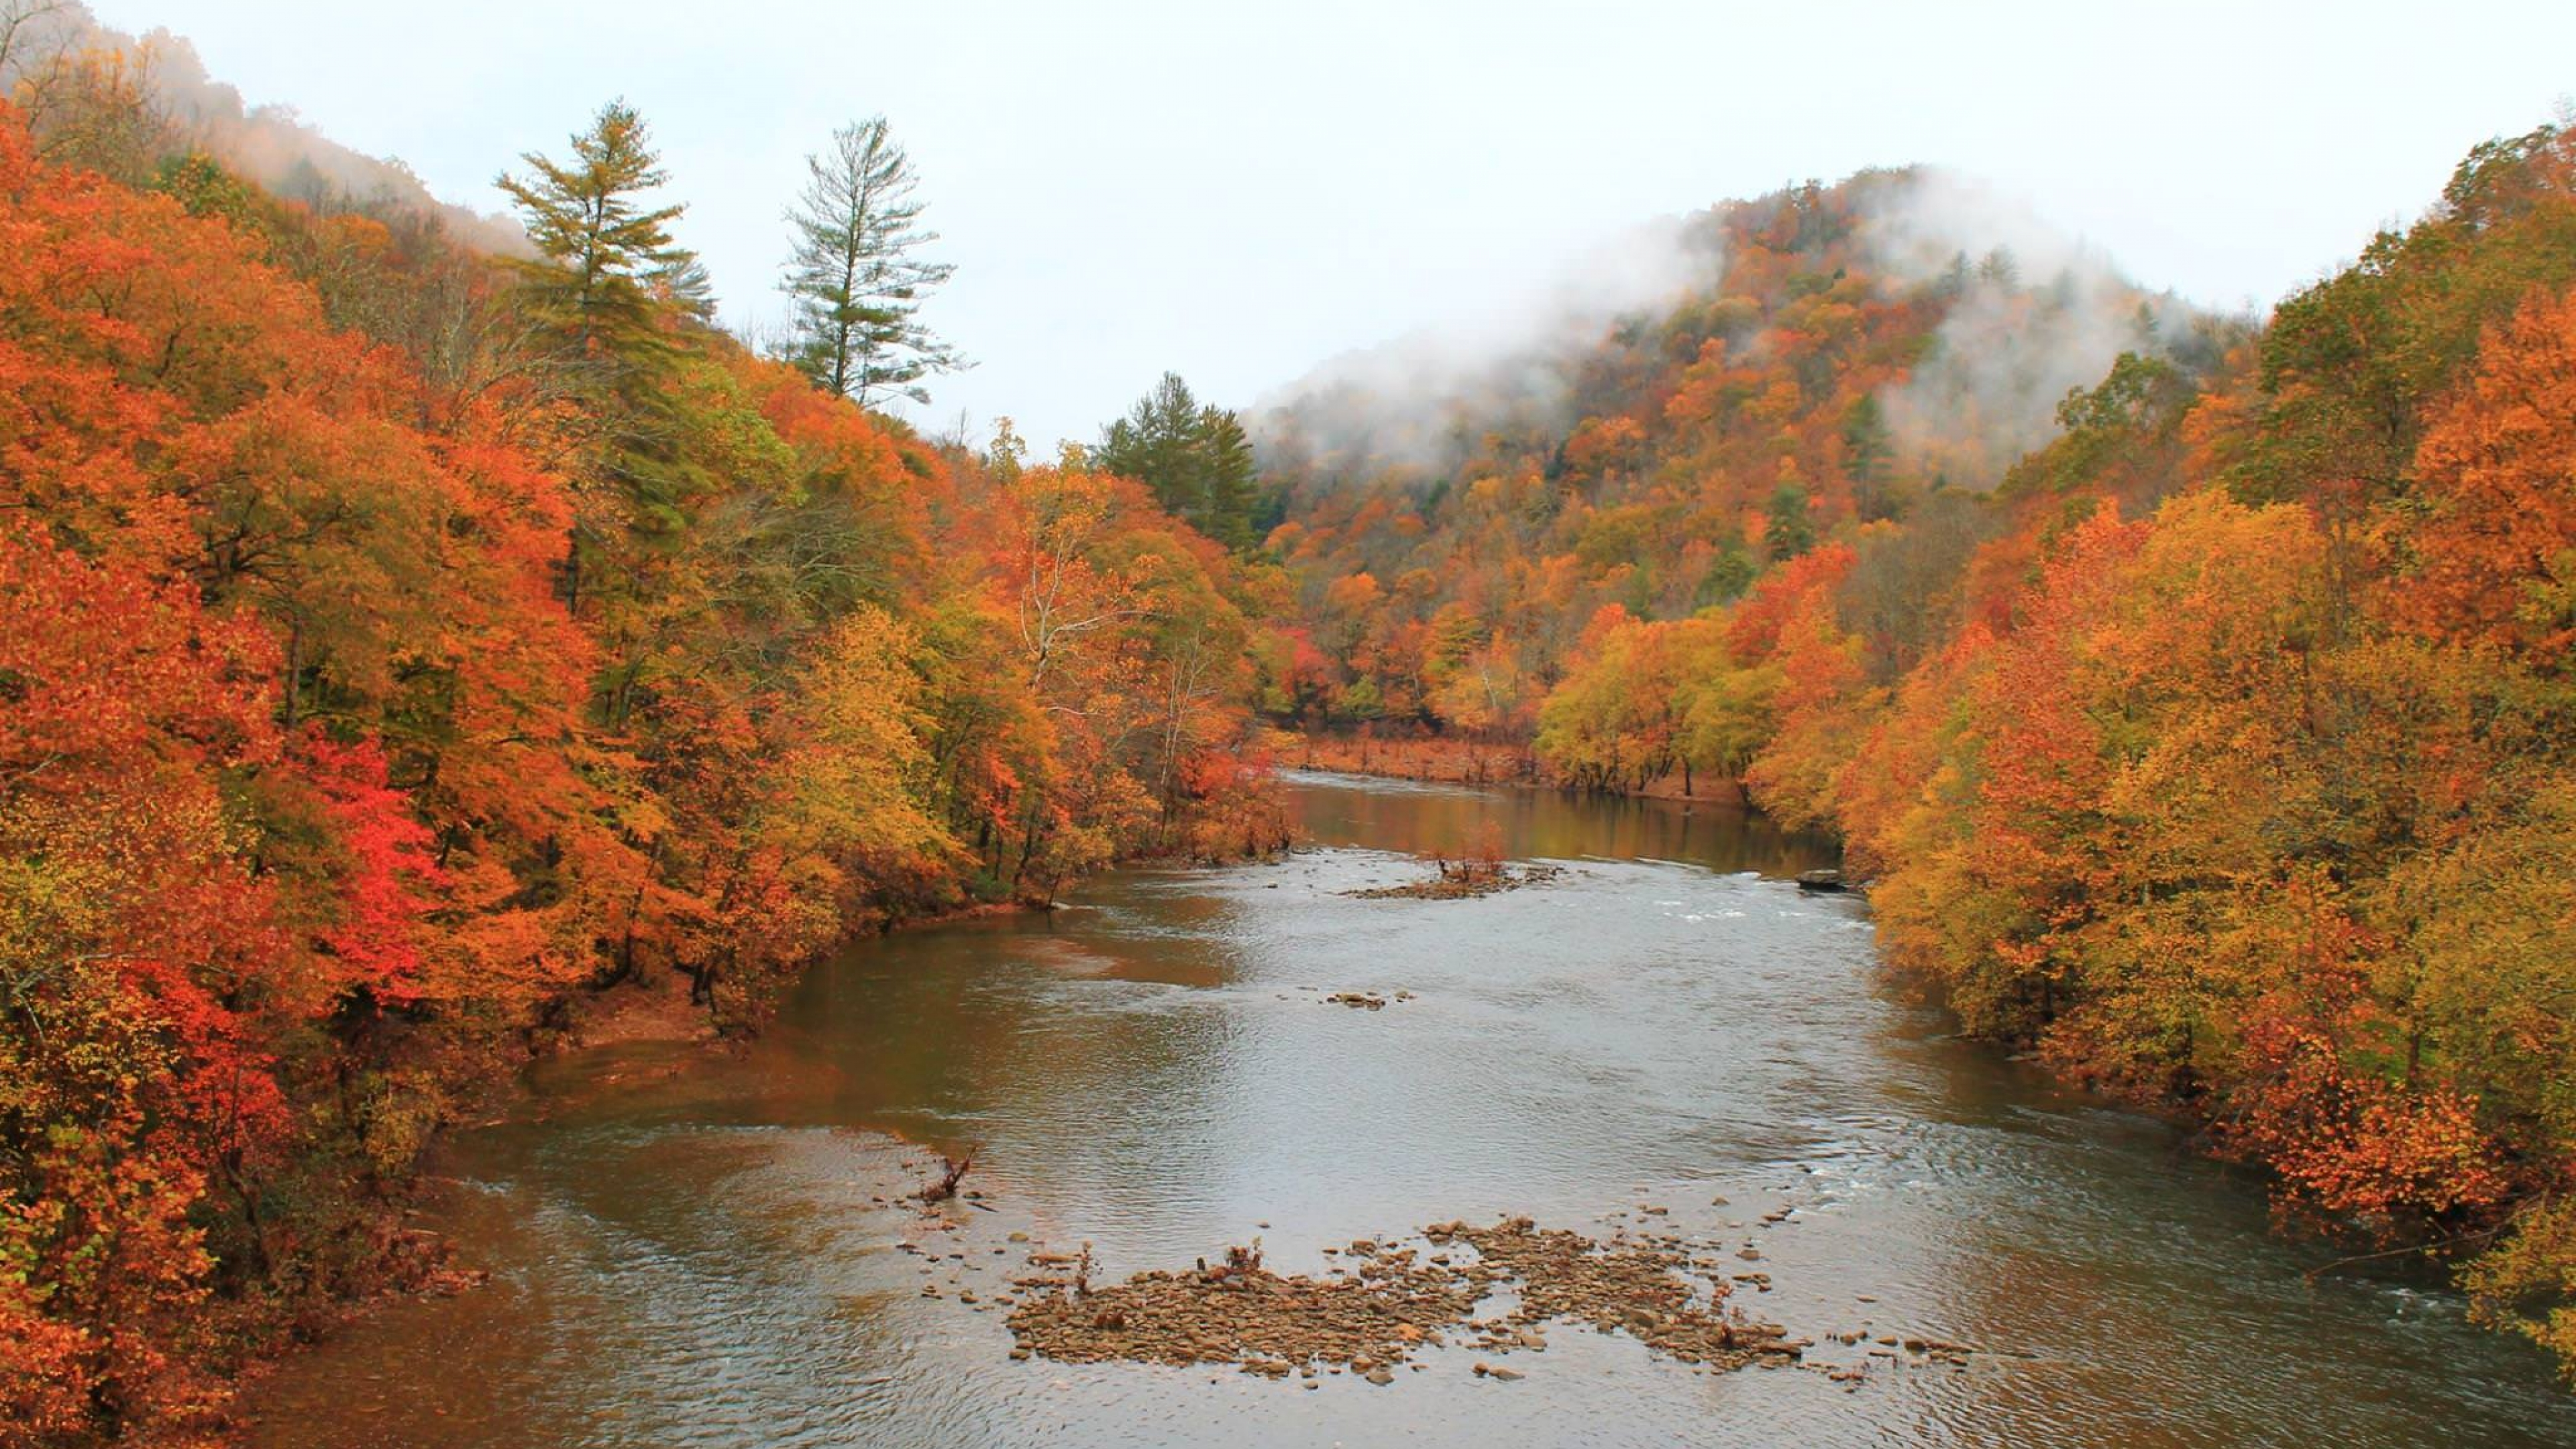 The red, orange, yellow, and green fall foliage surrounding the river at Big South Fork National River and Recreation Area